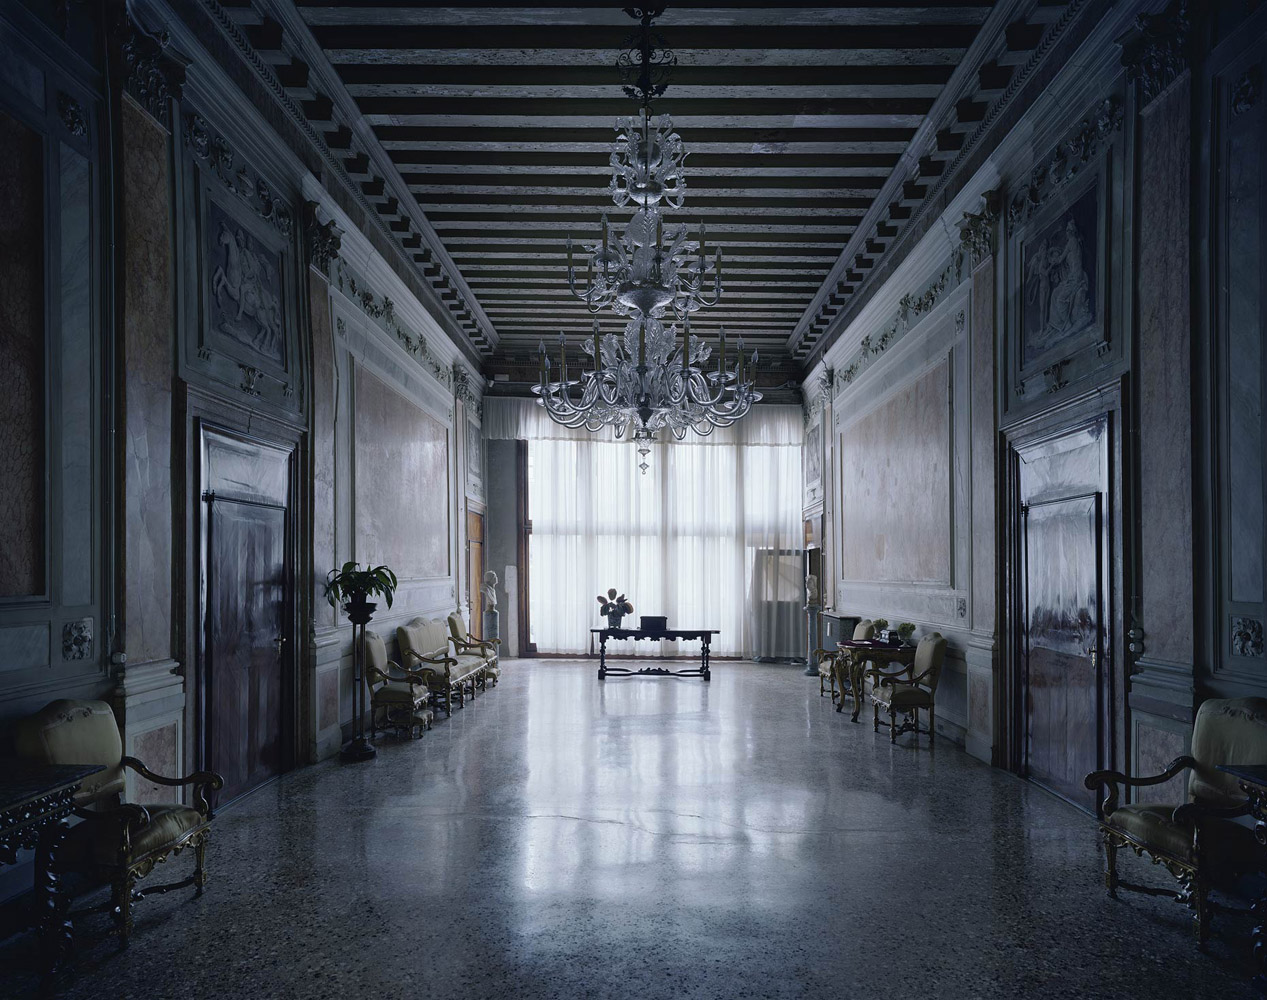 Palazzo Contarini Corfu Dagli Scrigni, Venice, Italy, 2012, by David Leventi. Archive print of an interior palace room, mounted to Dibond.